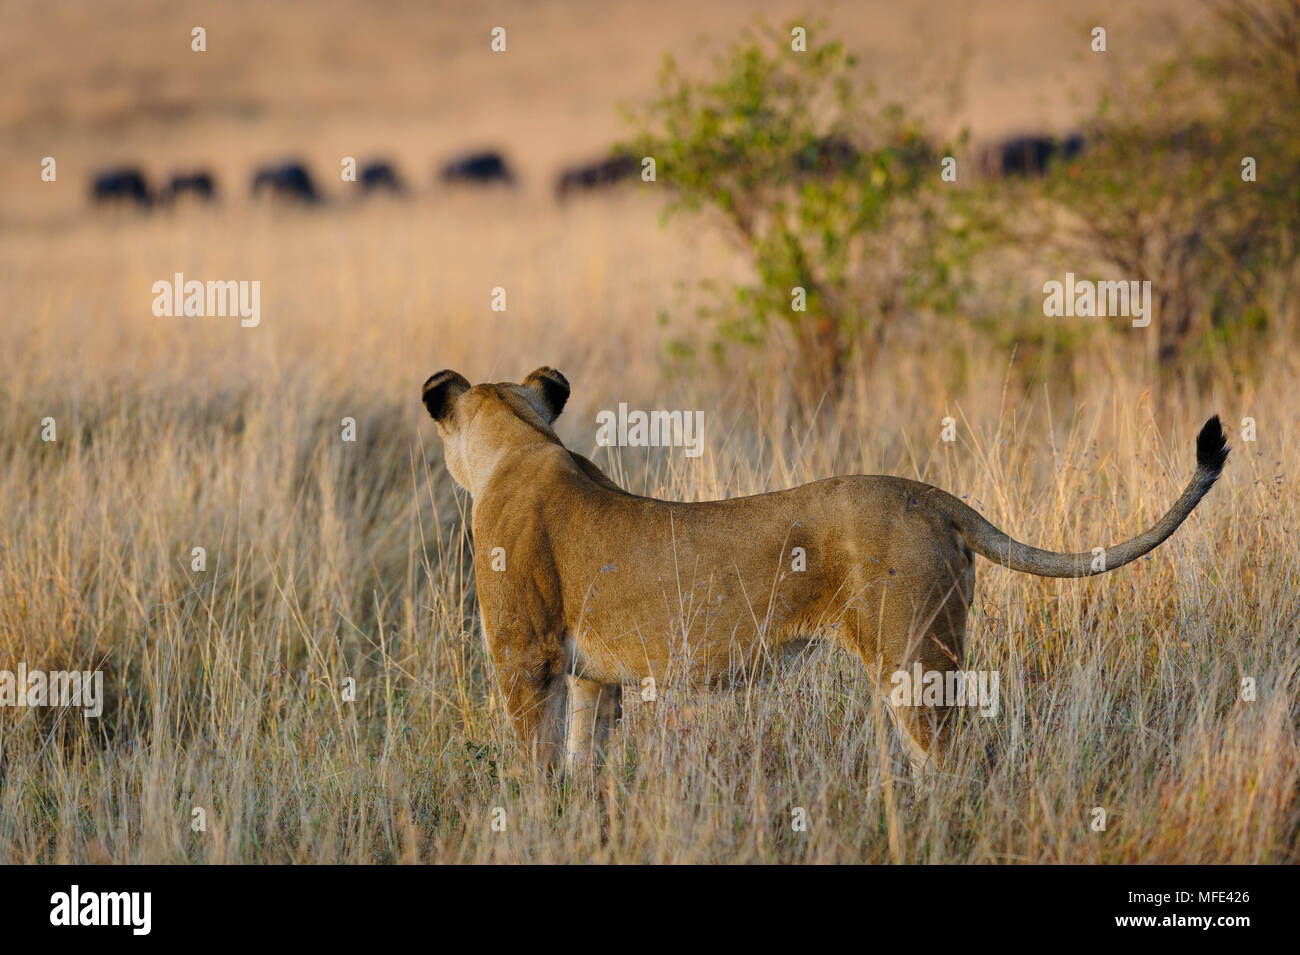 African African lioness hunting, with wildebeests in background, Panthera leo; Masai Mara, Kenya. - Stock Image